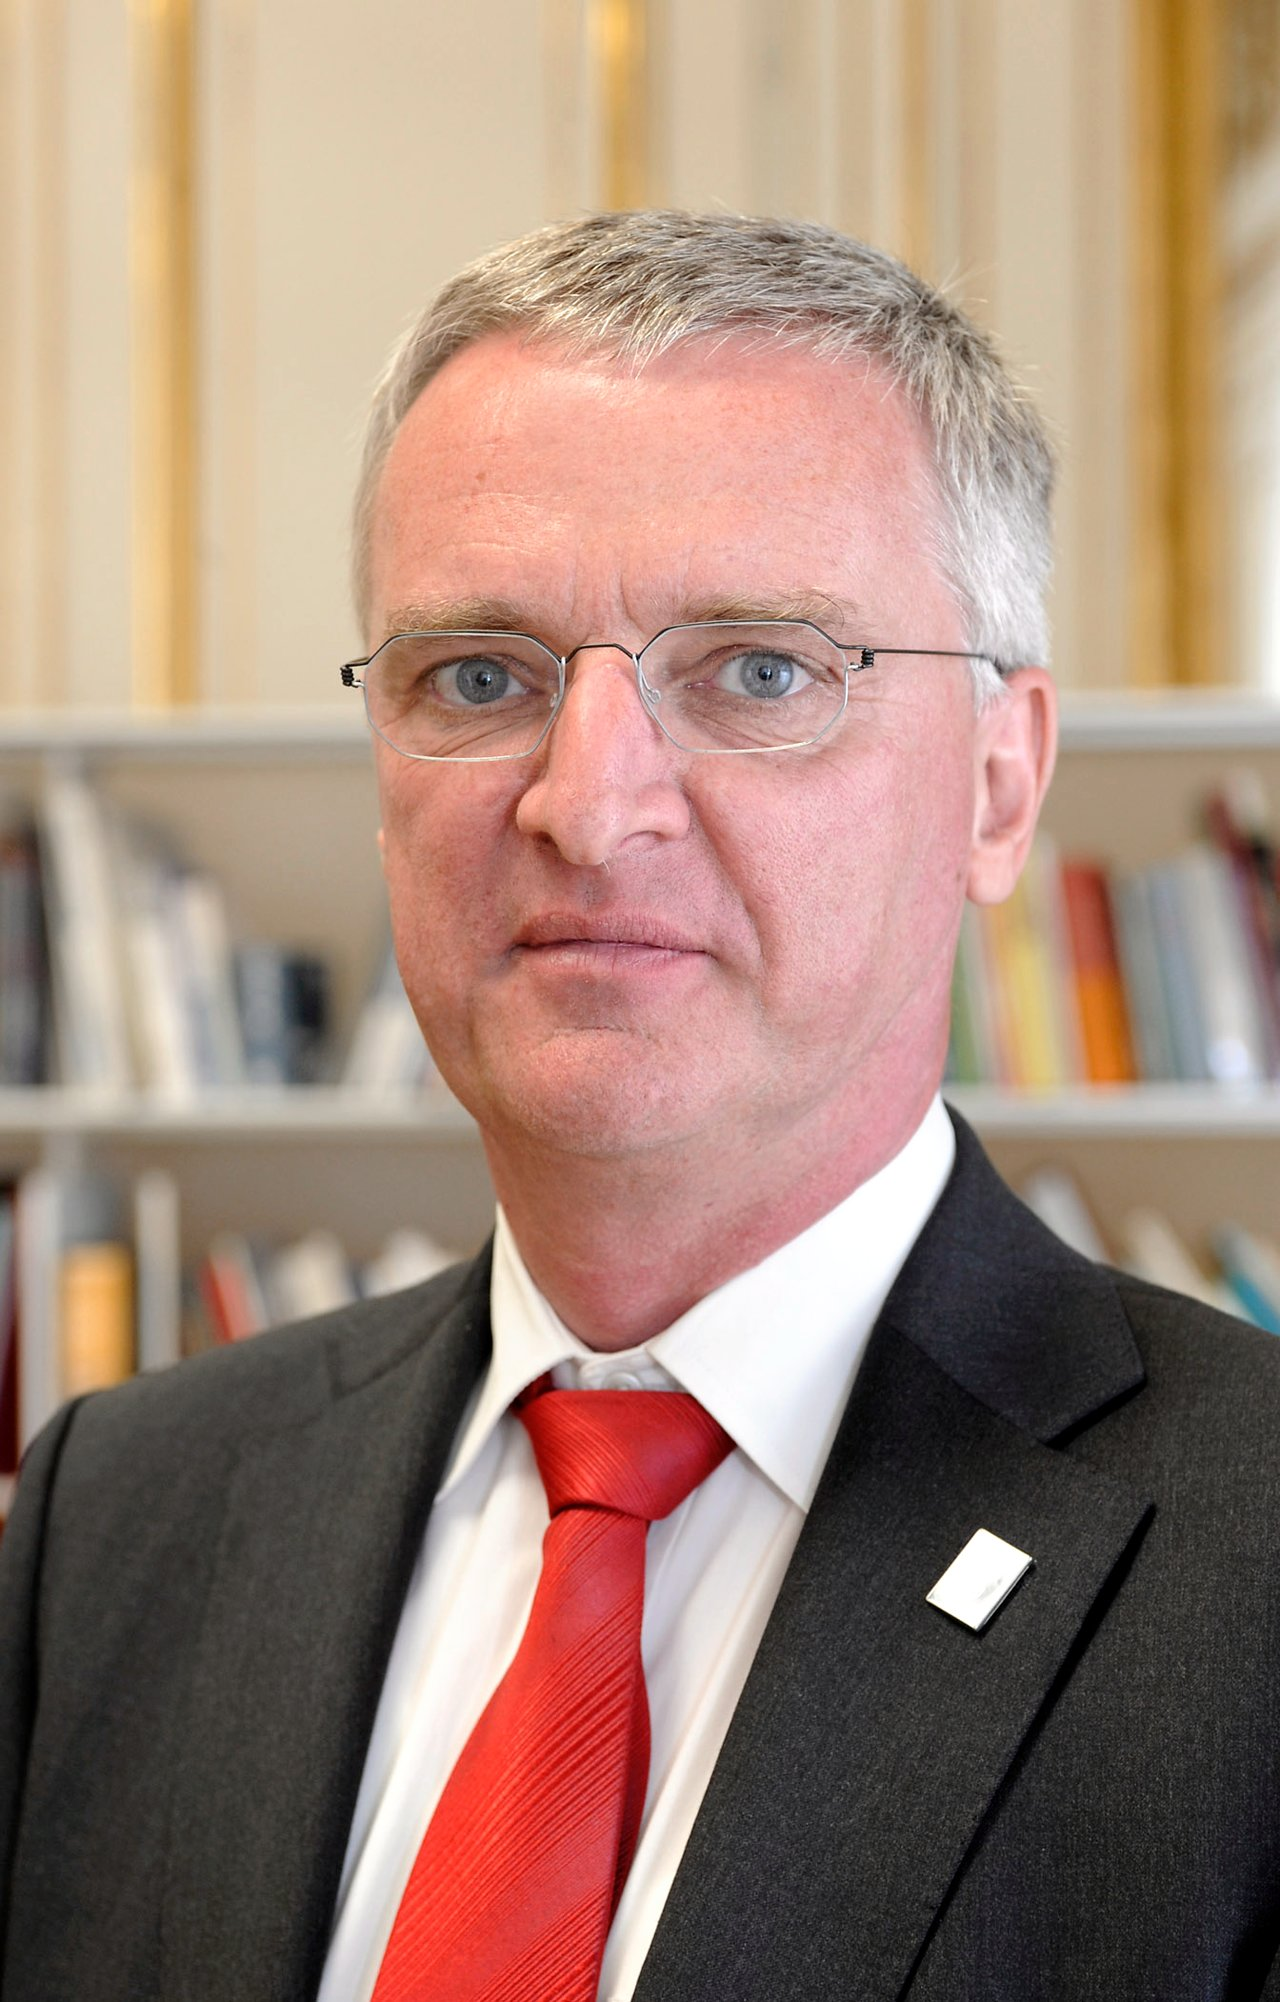 ESO Director General, Professor Tim de Zeeuw